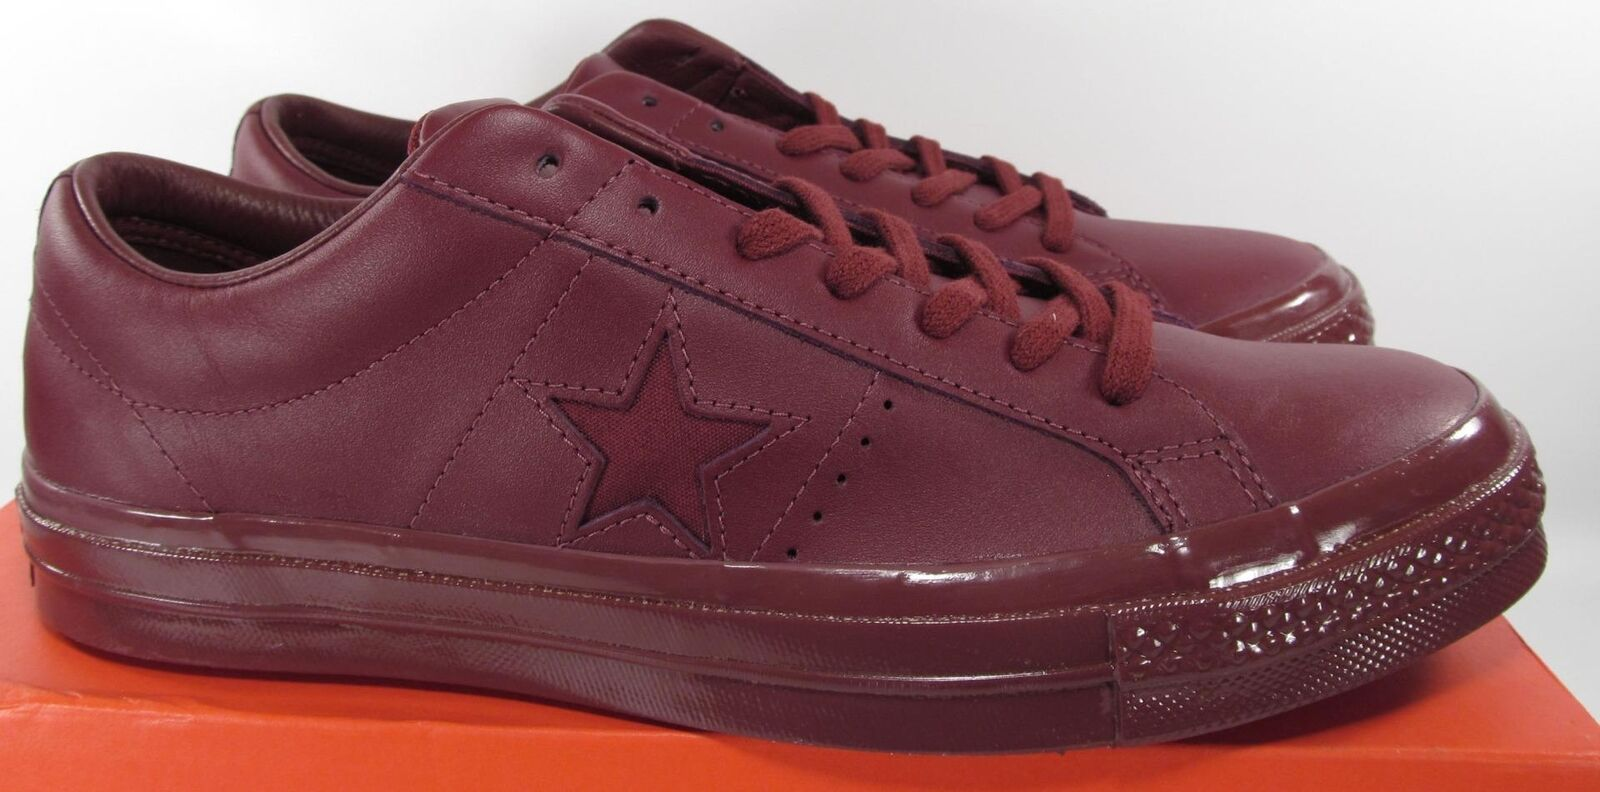 Converse One Star 74 Ox Lo Low Top MONO Bordeaux Burgundy Red LEATHER 155715C